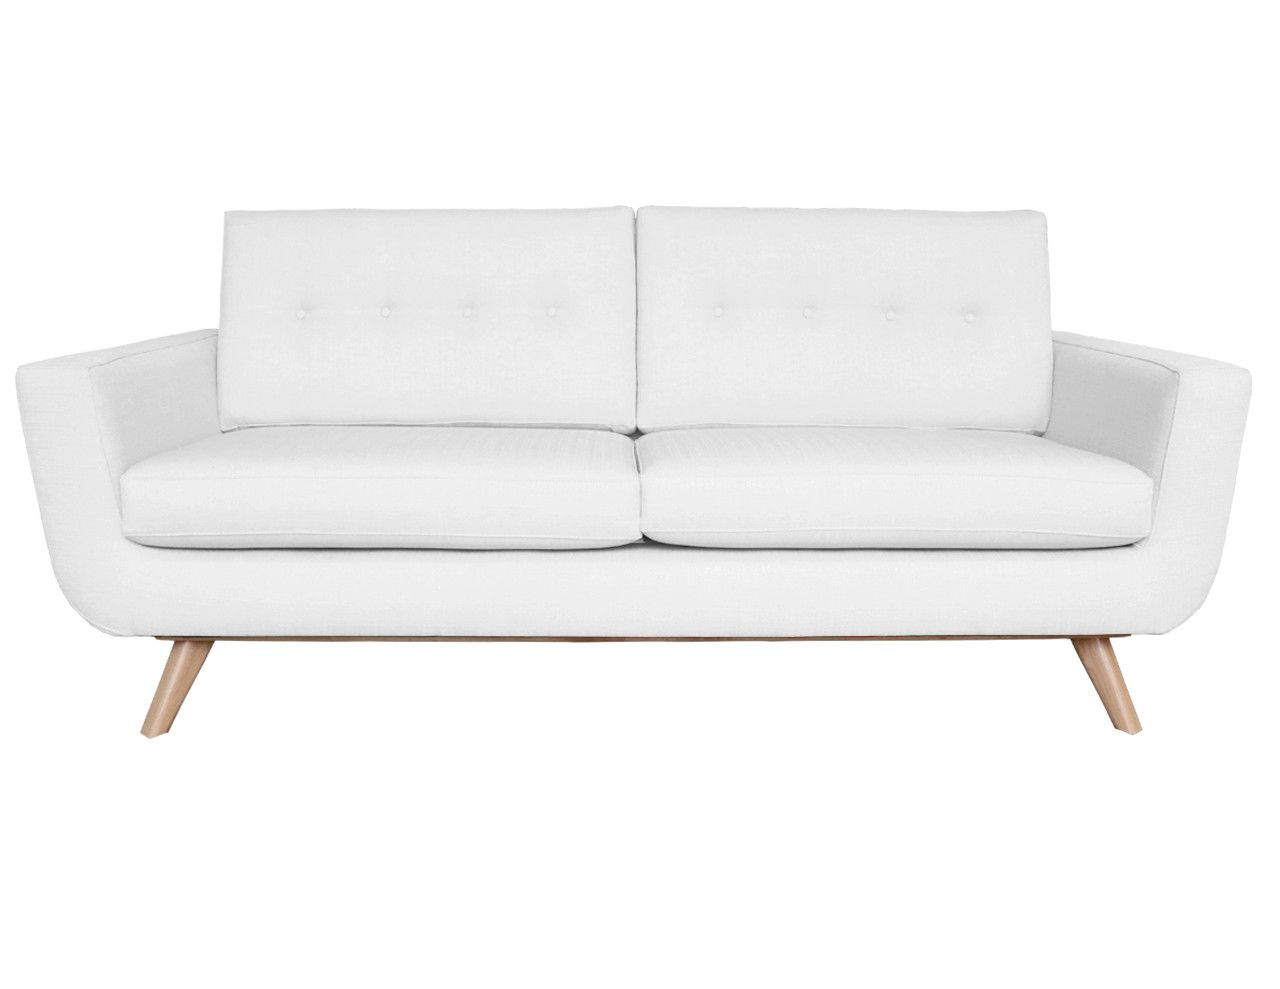 Callie Sofa | Products Pertaining To Callie Sofa Chairs (View 6 of 25)